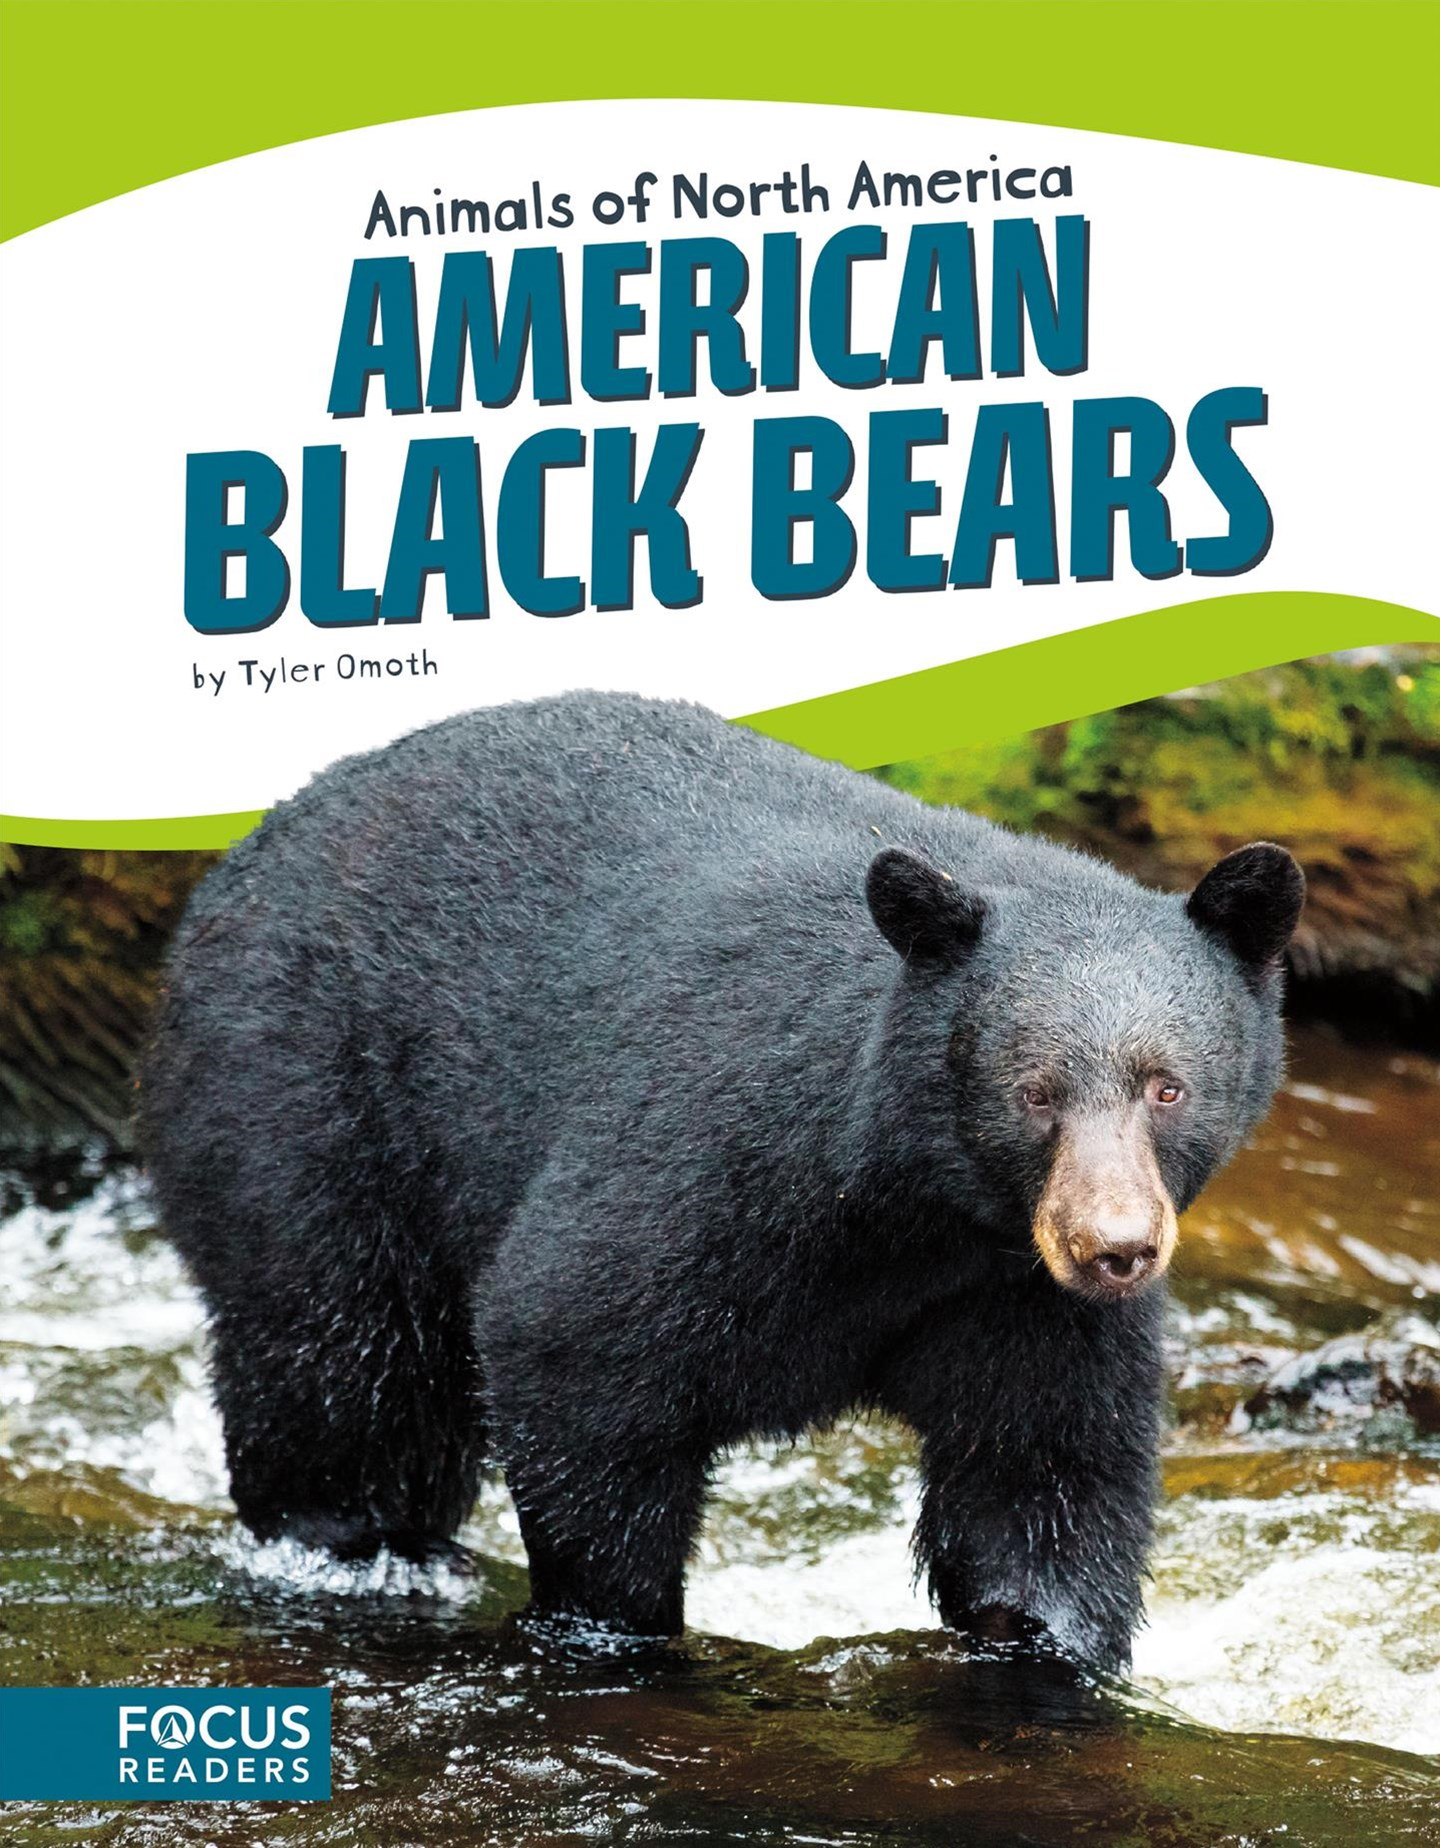 Animals of North America: American Black Bears